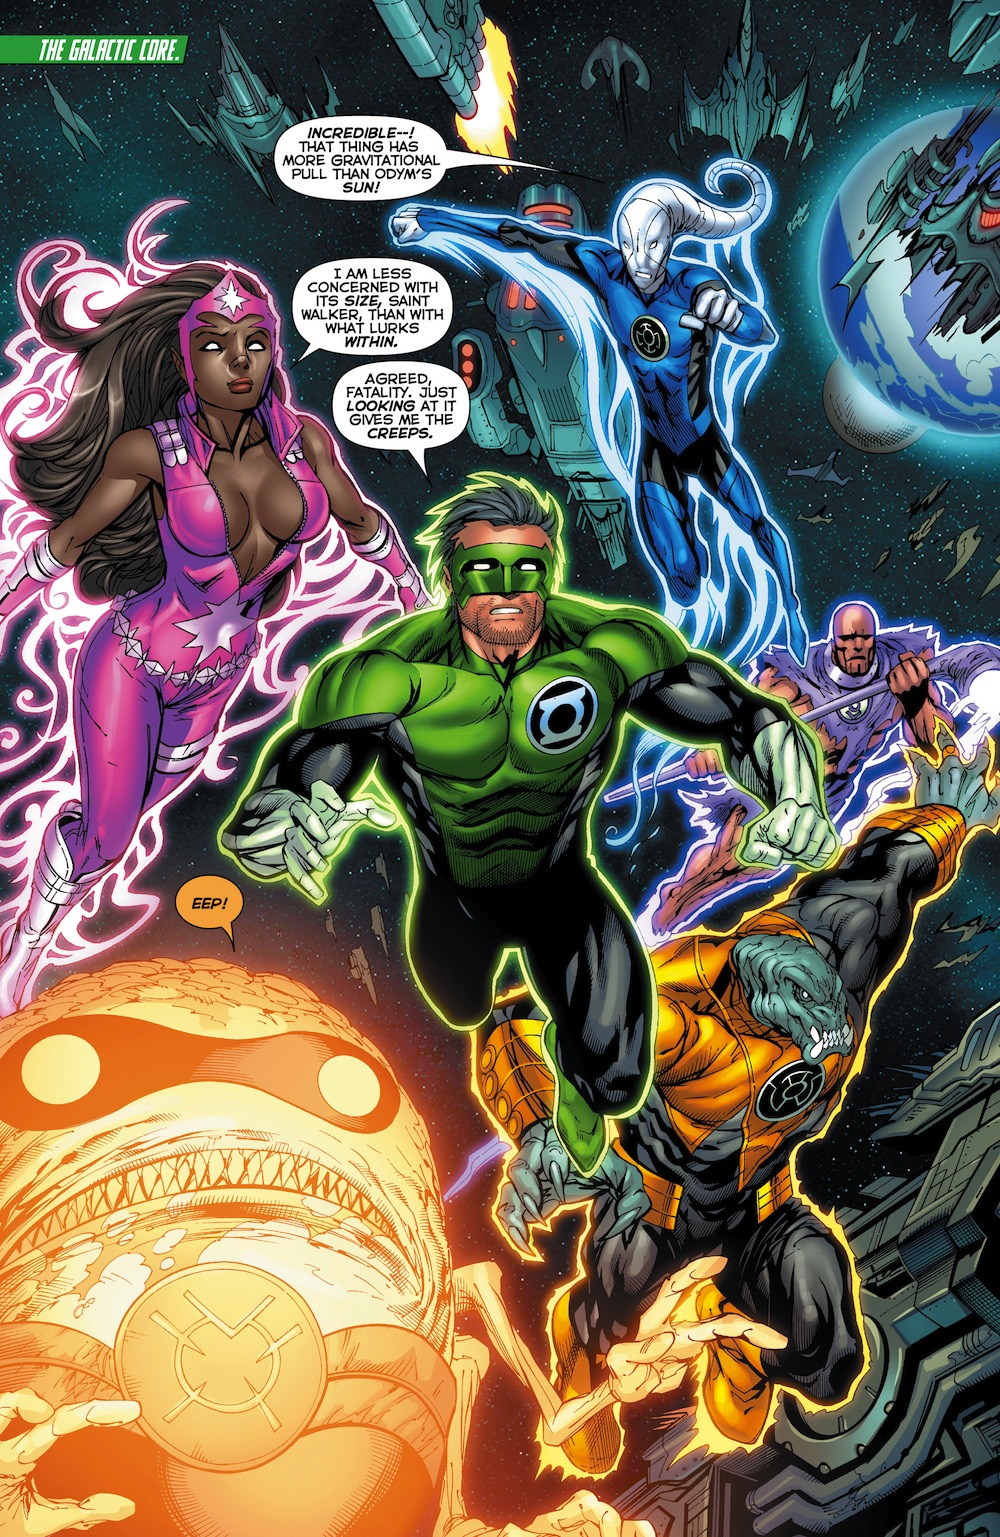 Green Lantern New Guardians wallpapers Comics HQ Green Lantern 1000x1537